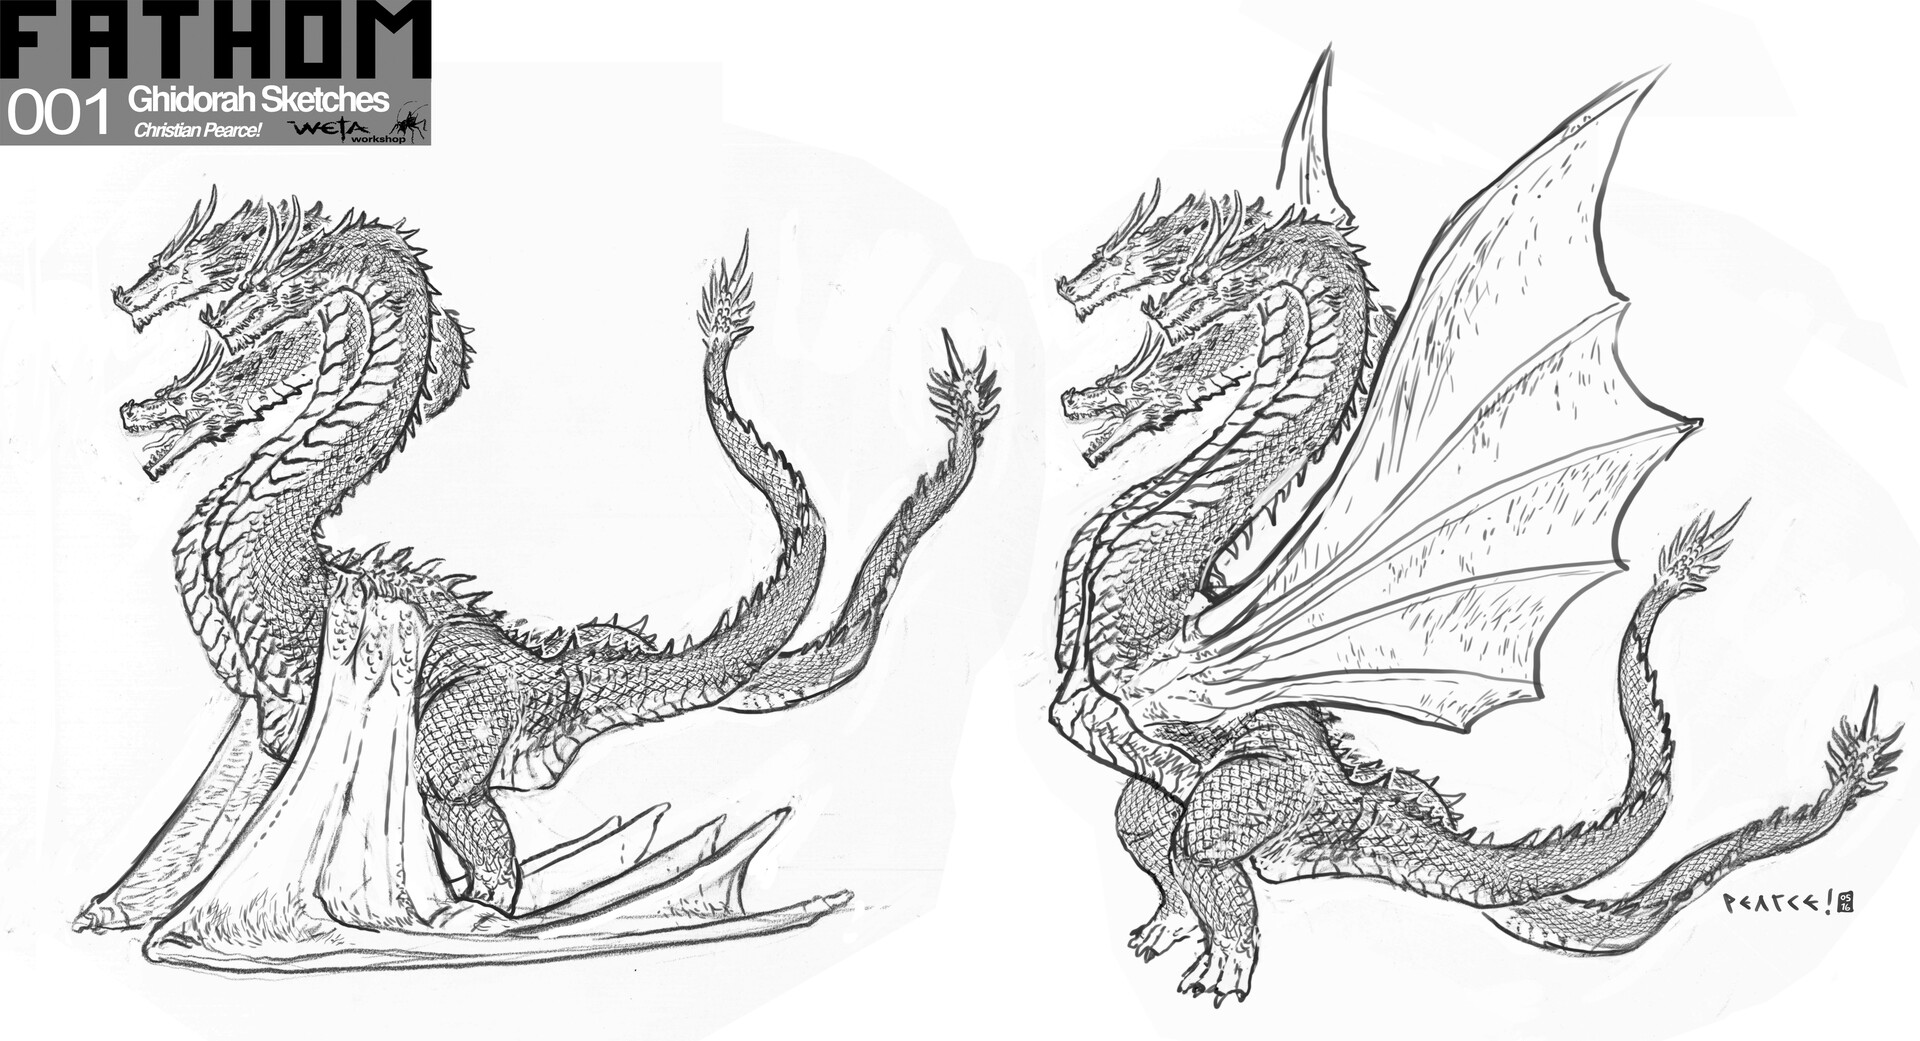 Ghidorah Sketches - Artist: Christian Pearce